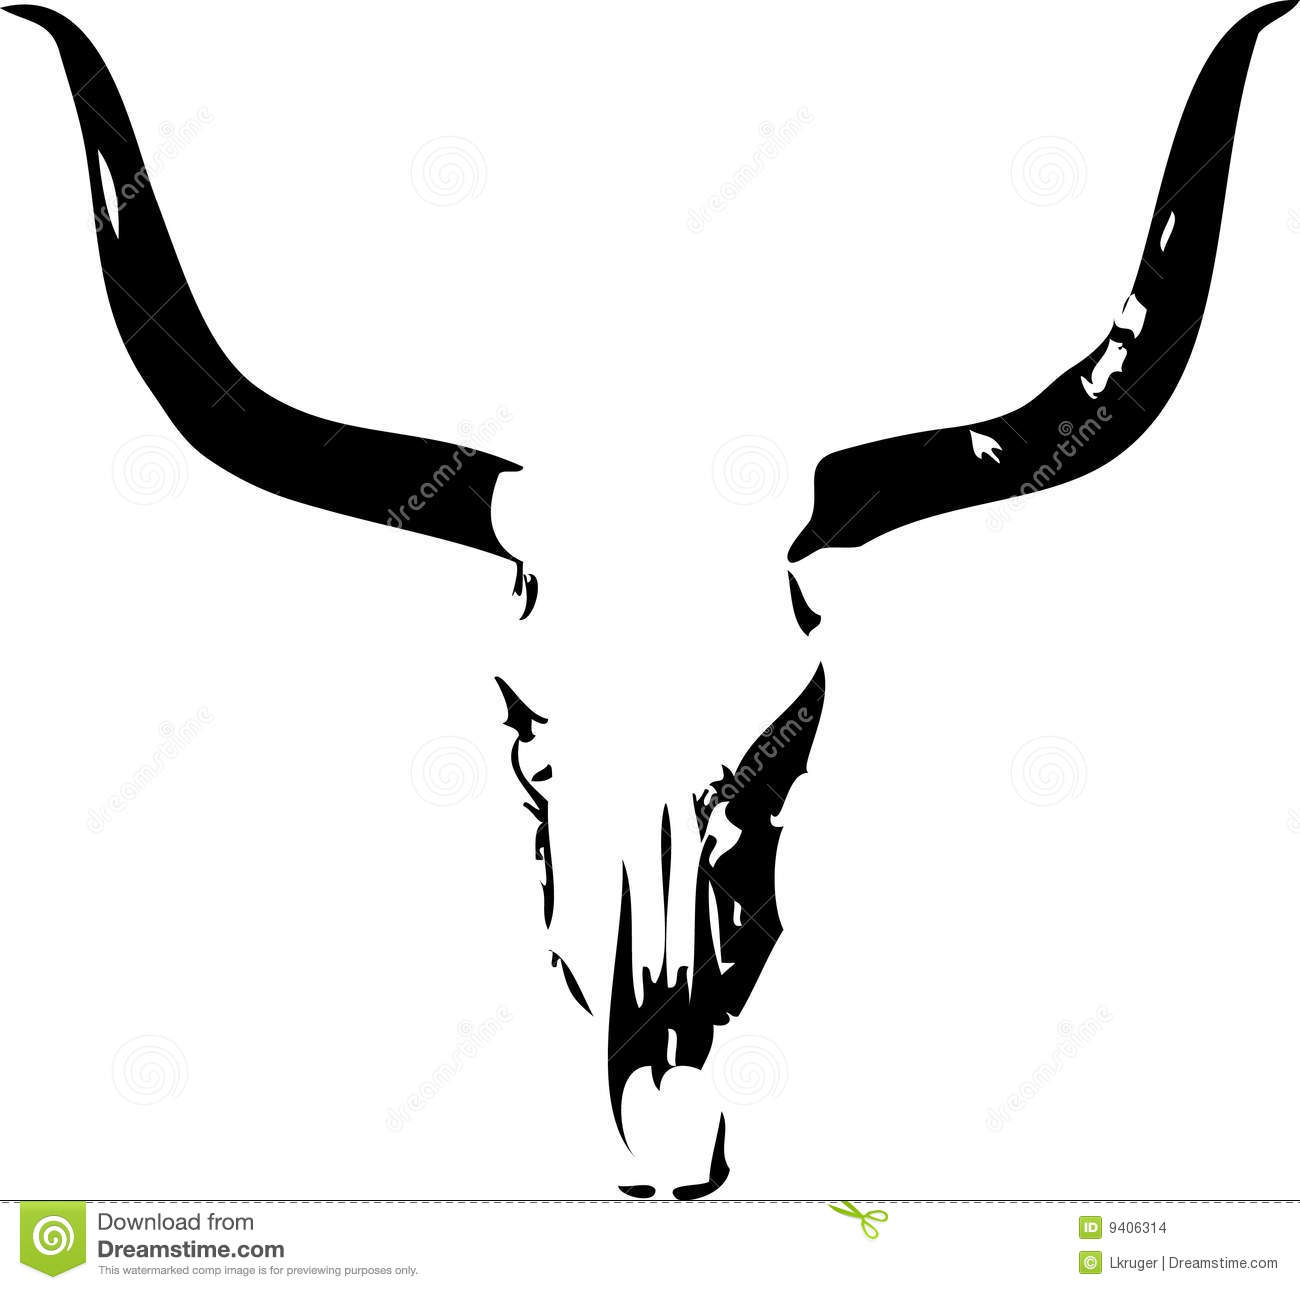 Longhorn Cattle clipart #13, Download drawings